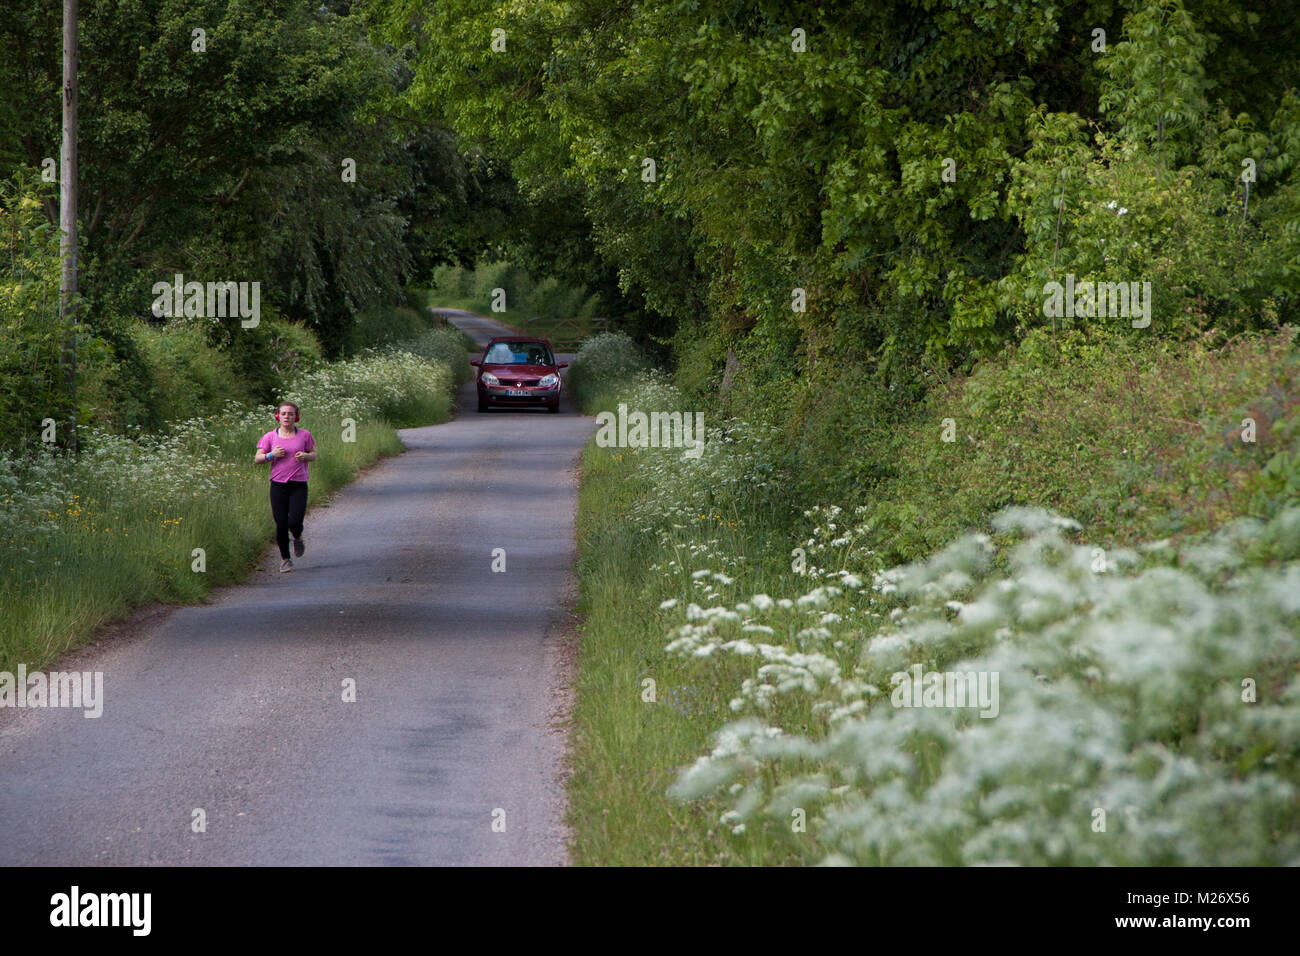 Woman jogger in pink top and country lane with car approaching - Stock Image